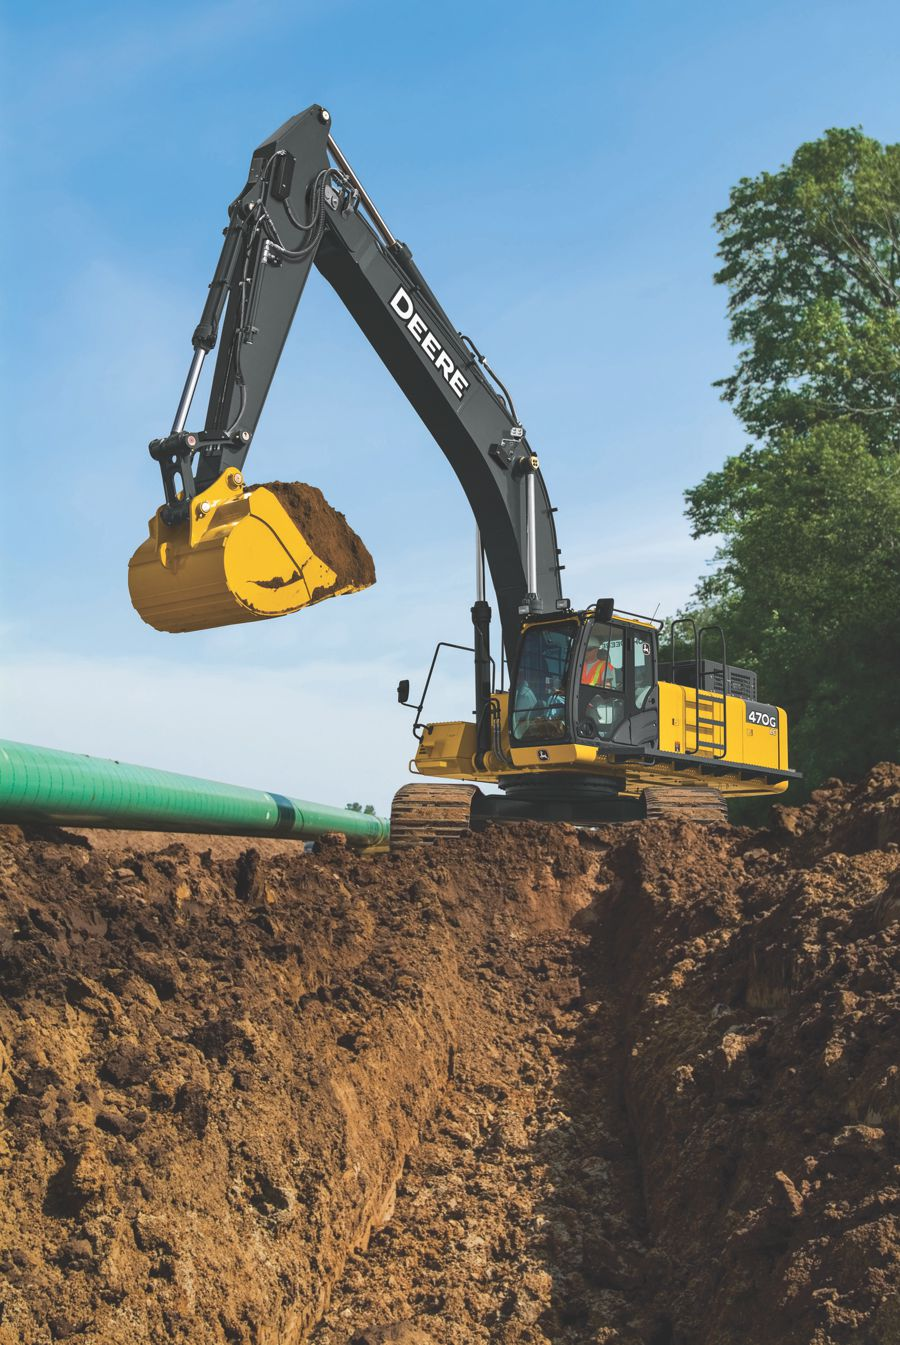 Grade Guidance Technology now featured in the John Deere 470G LC Excavator